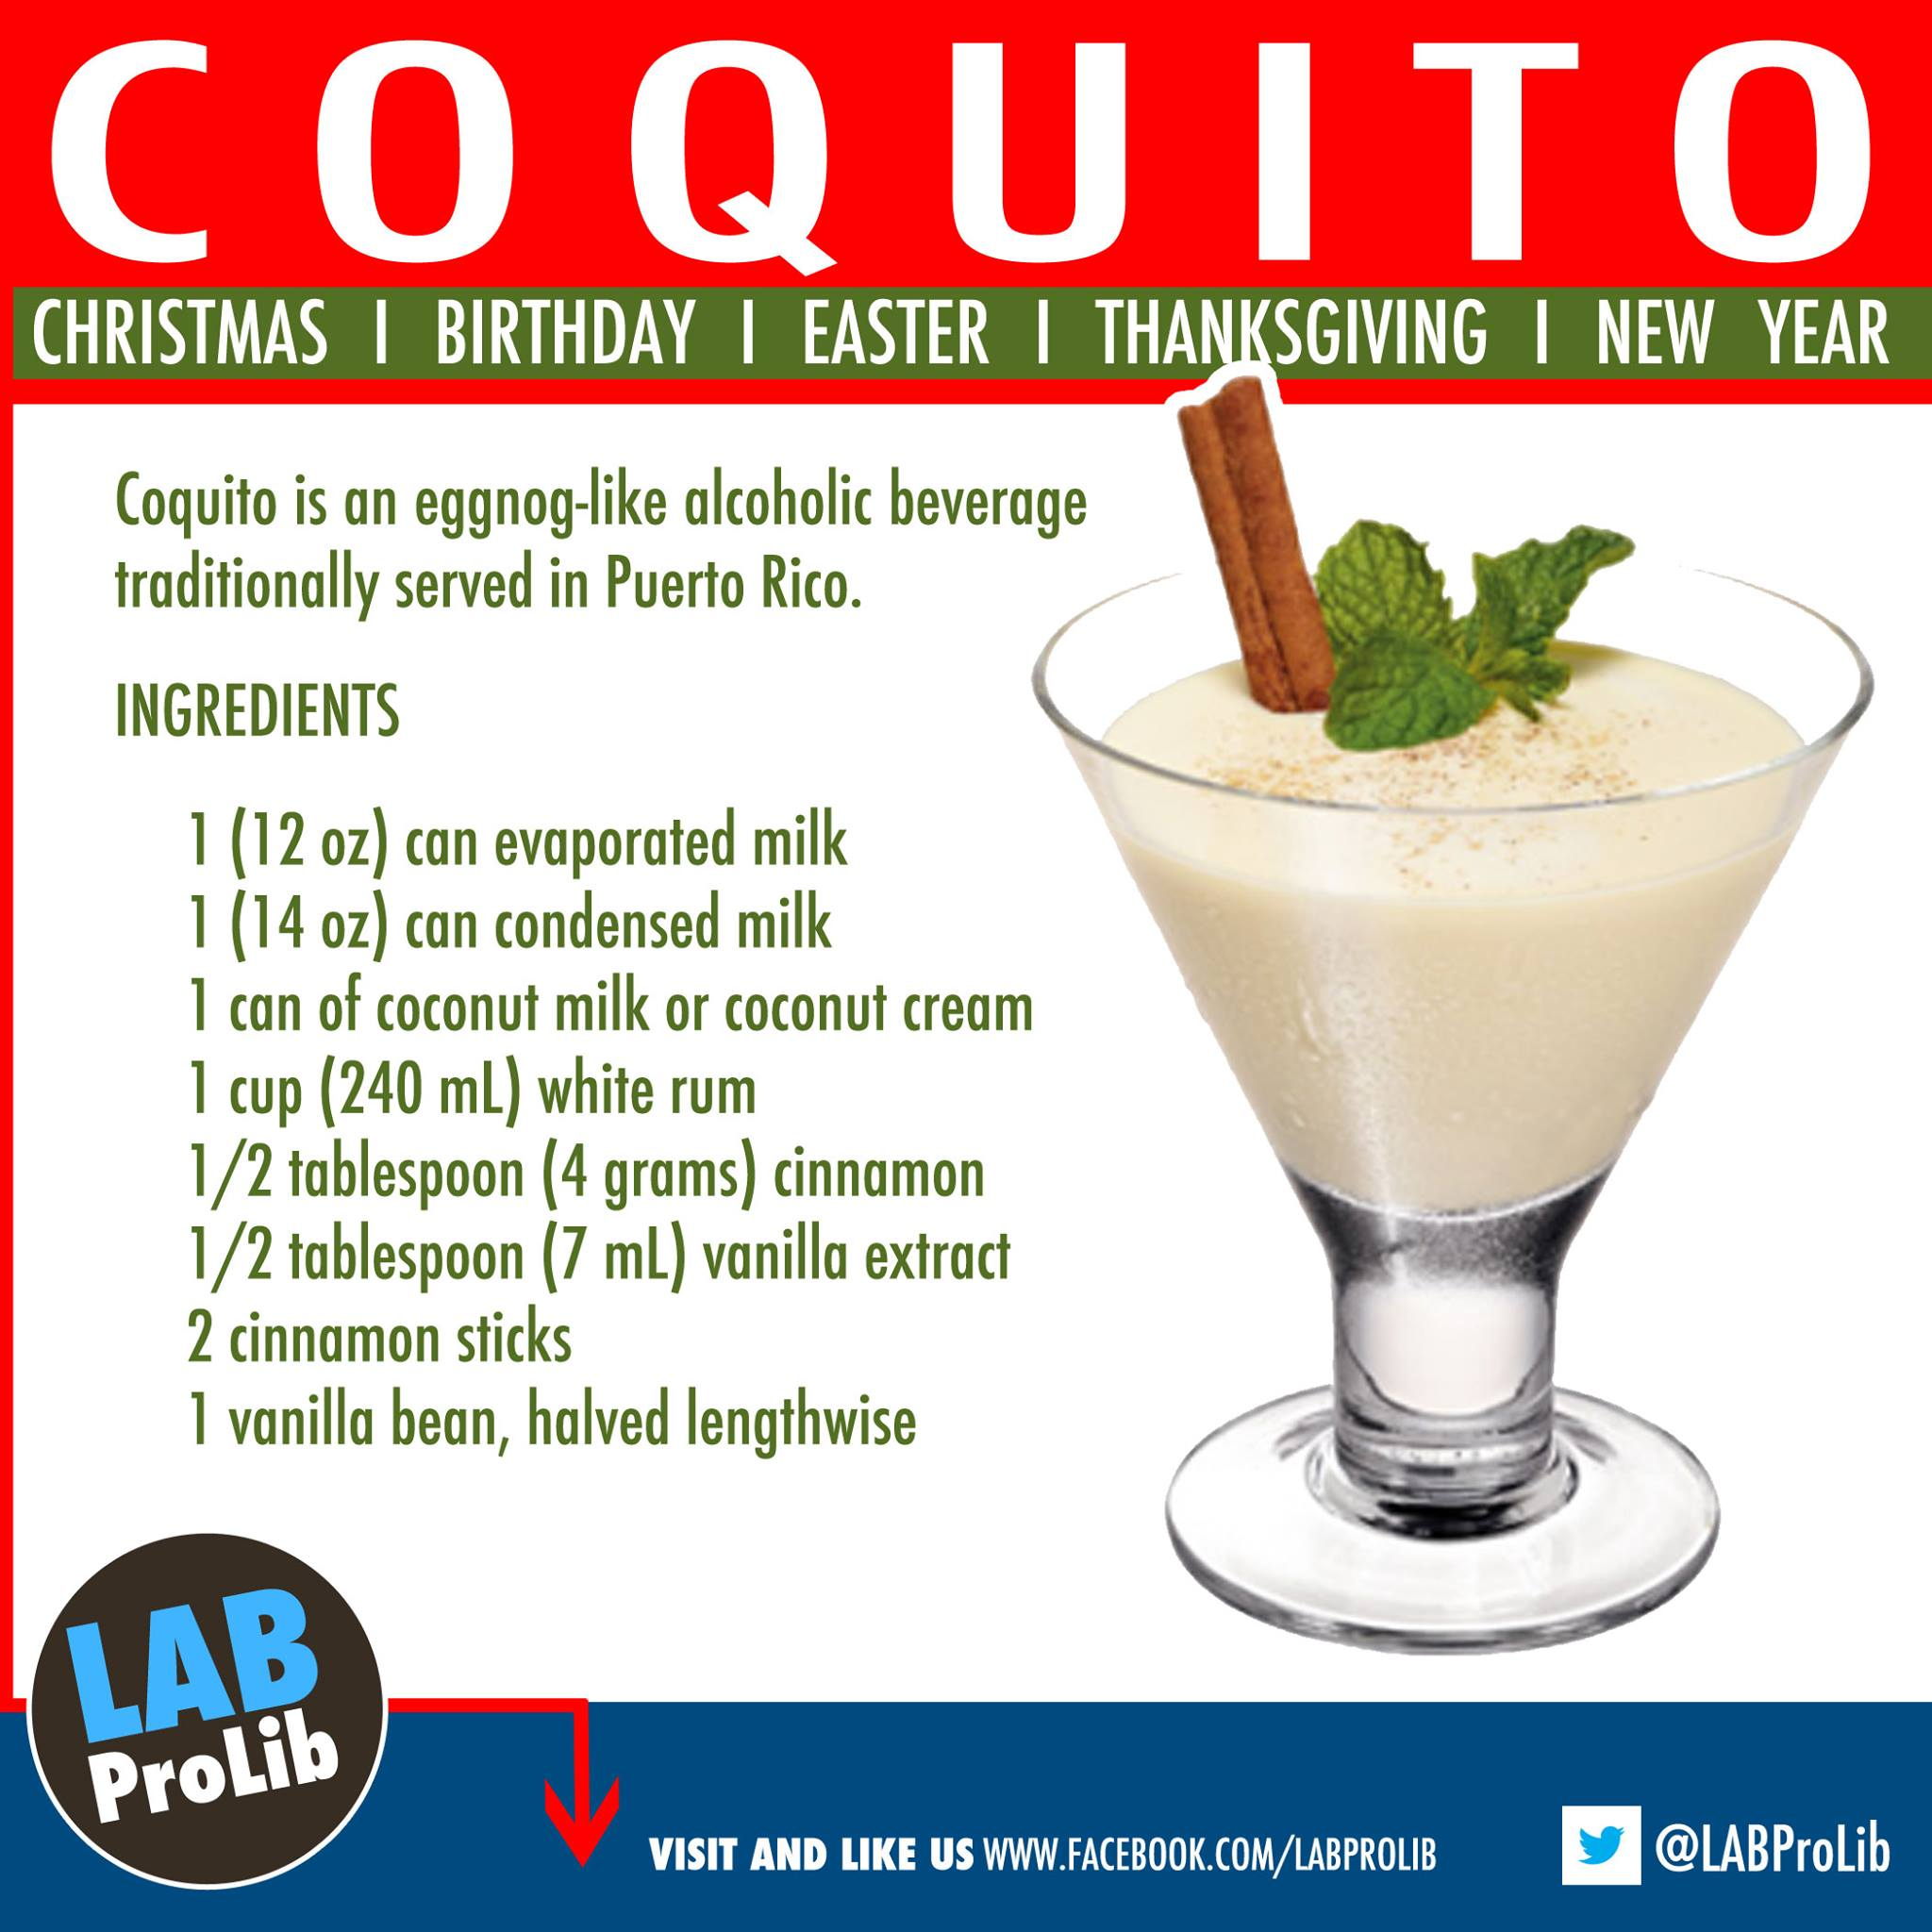 HOLIDAY DRINK: #Coquito Is An Eggnog-like Alcoholic